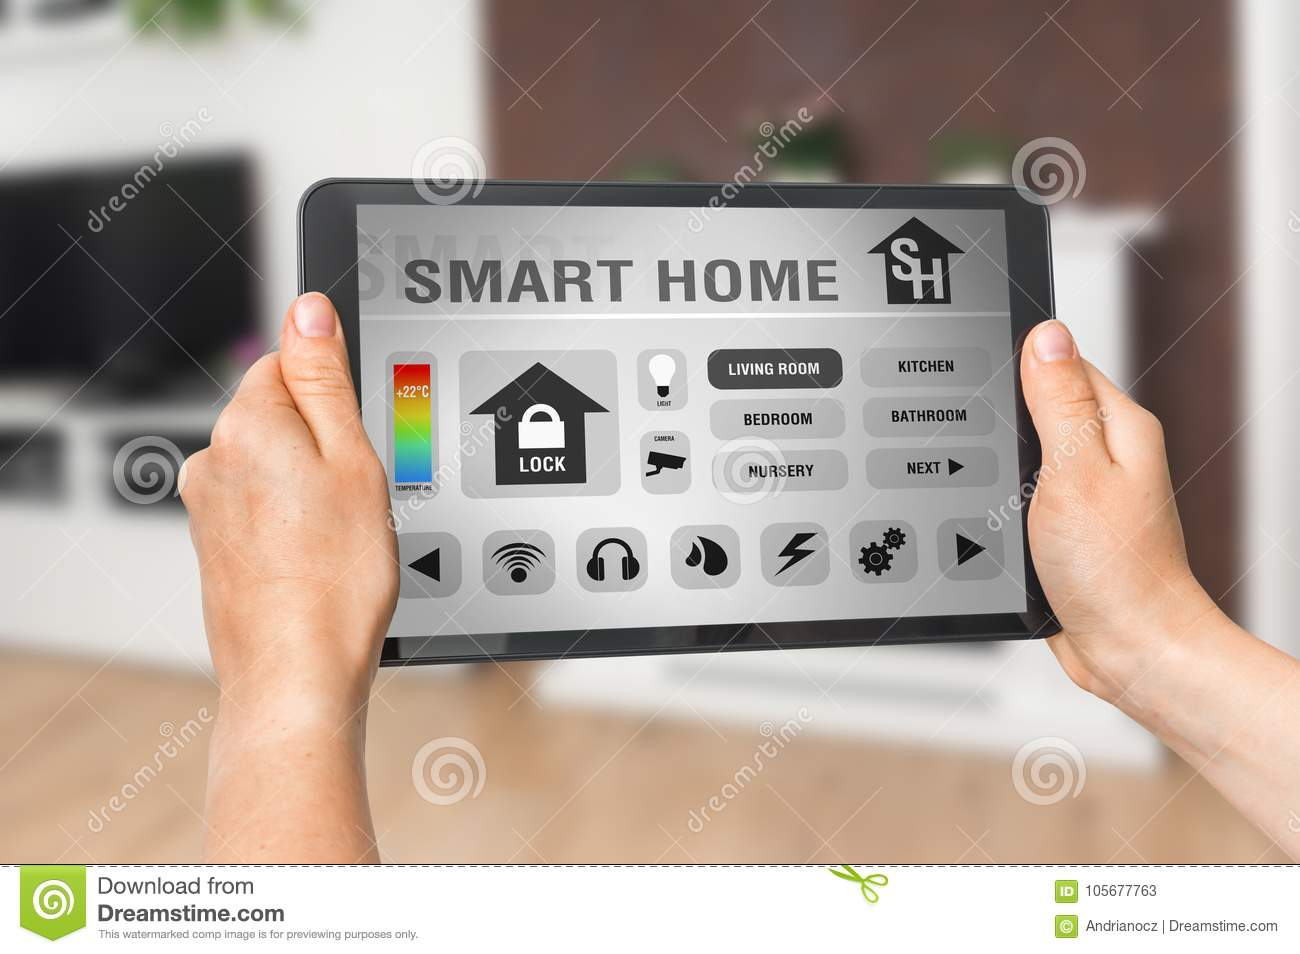 Smart Home Control App On Tablet - Smart Home Concept Stock Image ...